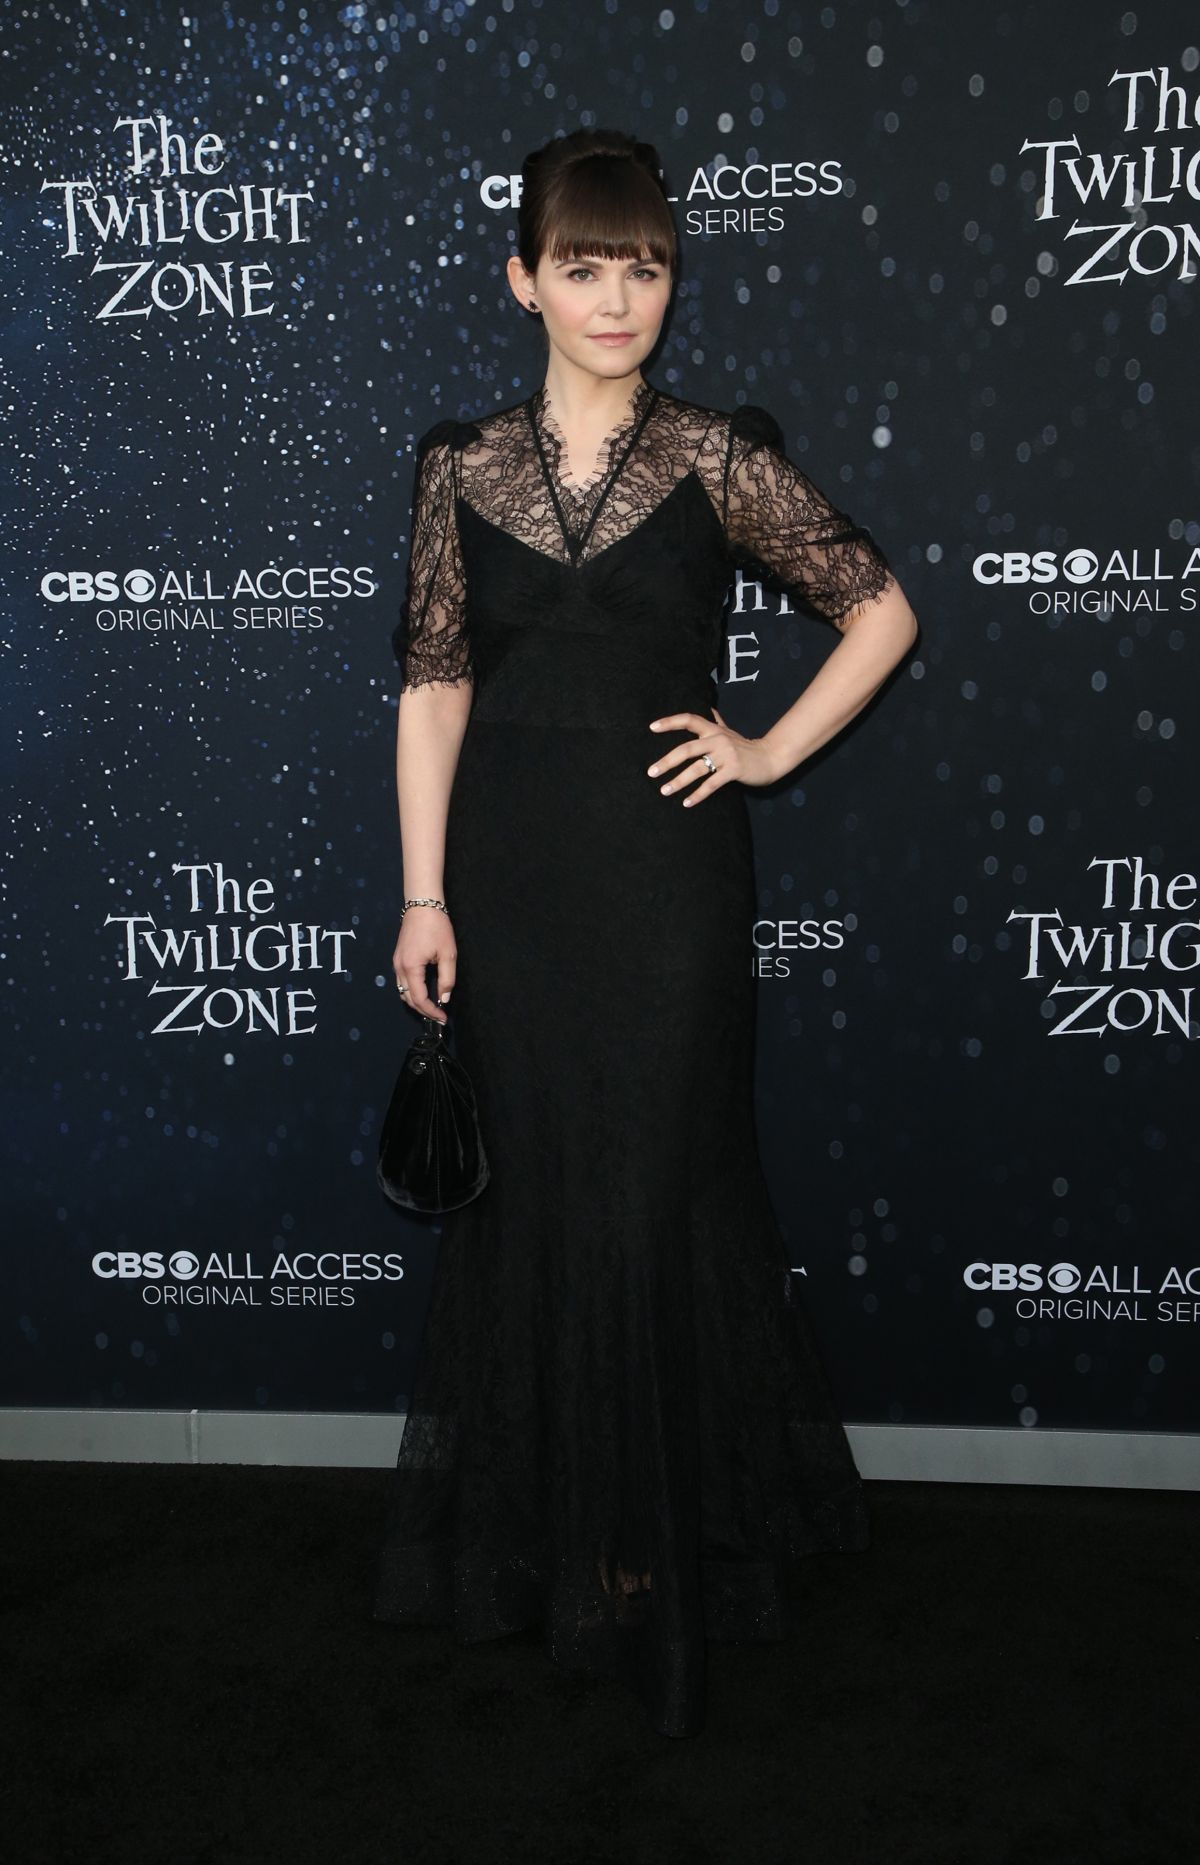 Ginnifer Goodwin At The Twilight Zone Premiere In